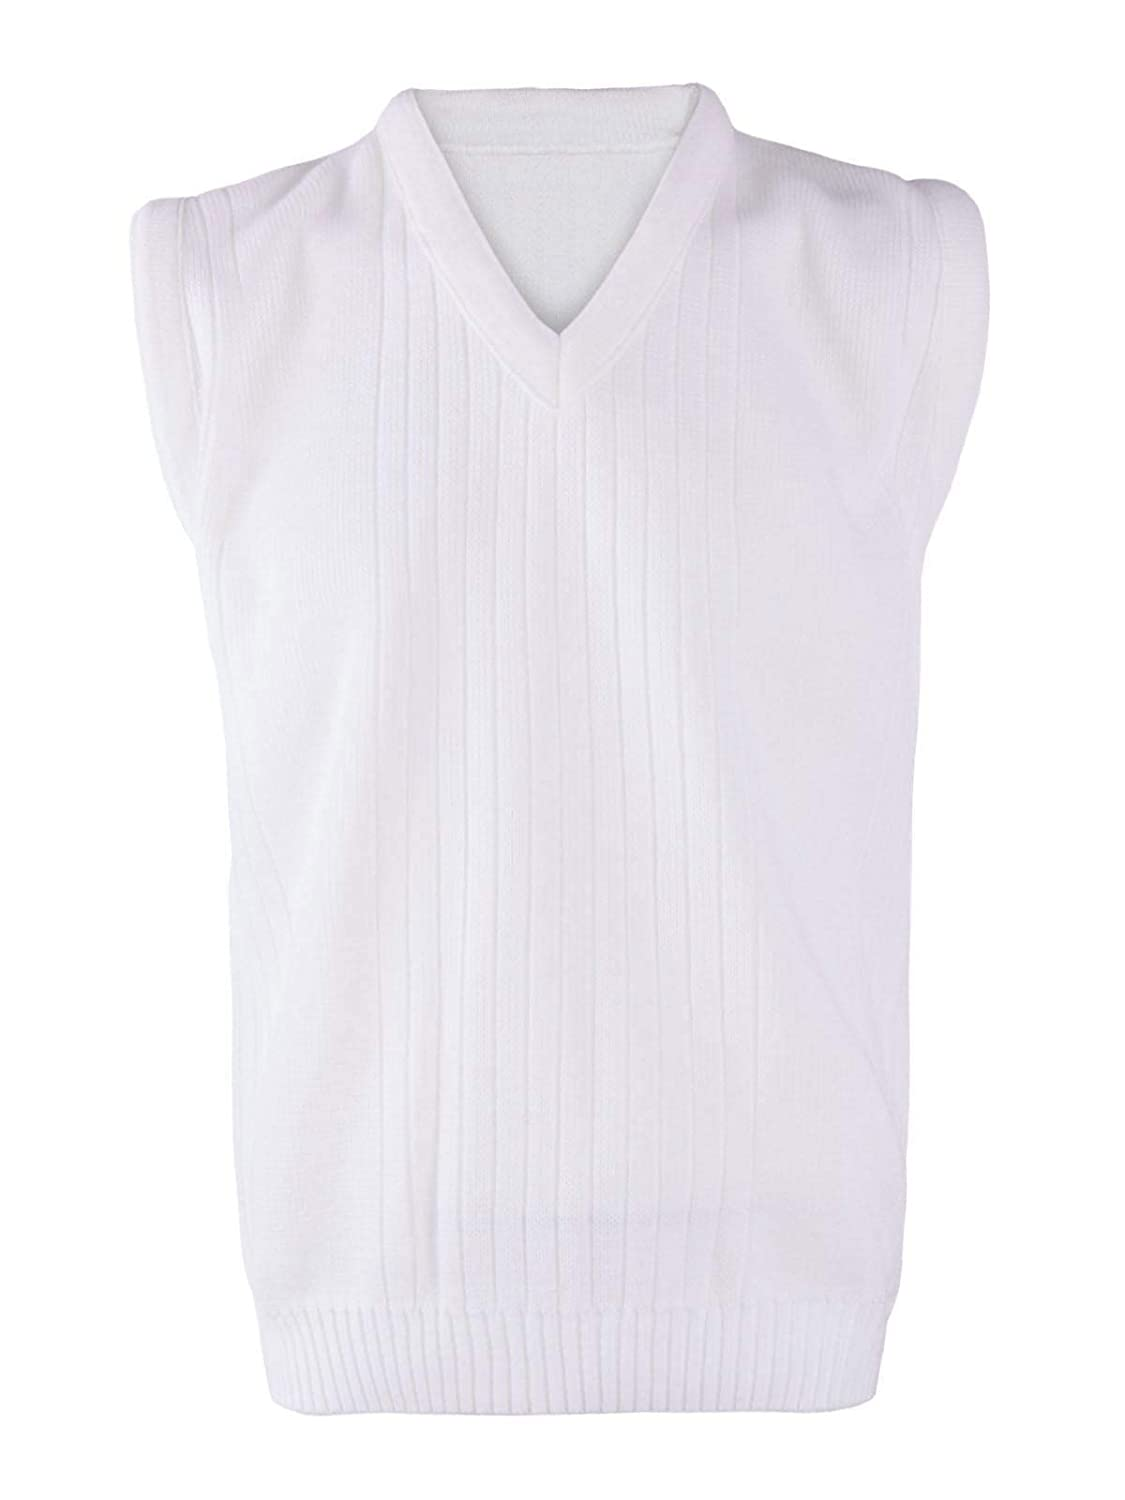 DIGITAL SPOT Mens Bowling White Knitted Ribbed Sweater Adult Sleeveless V Neck Lawn Bowl Top Small//5X-Large